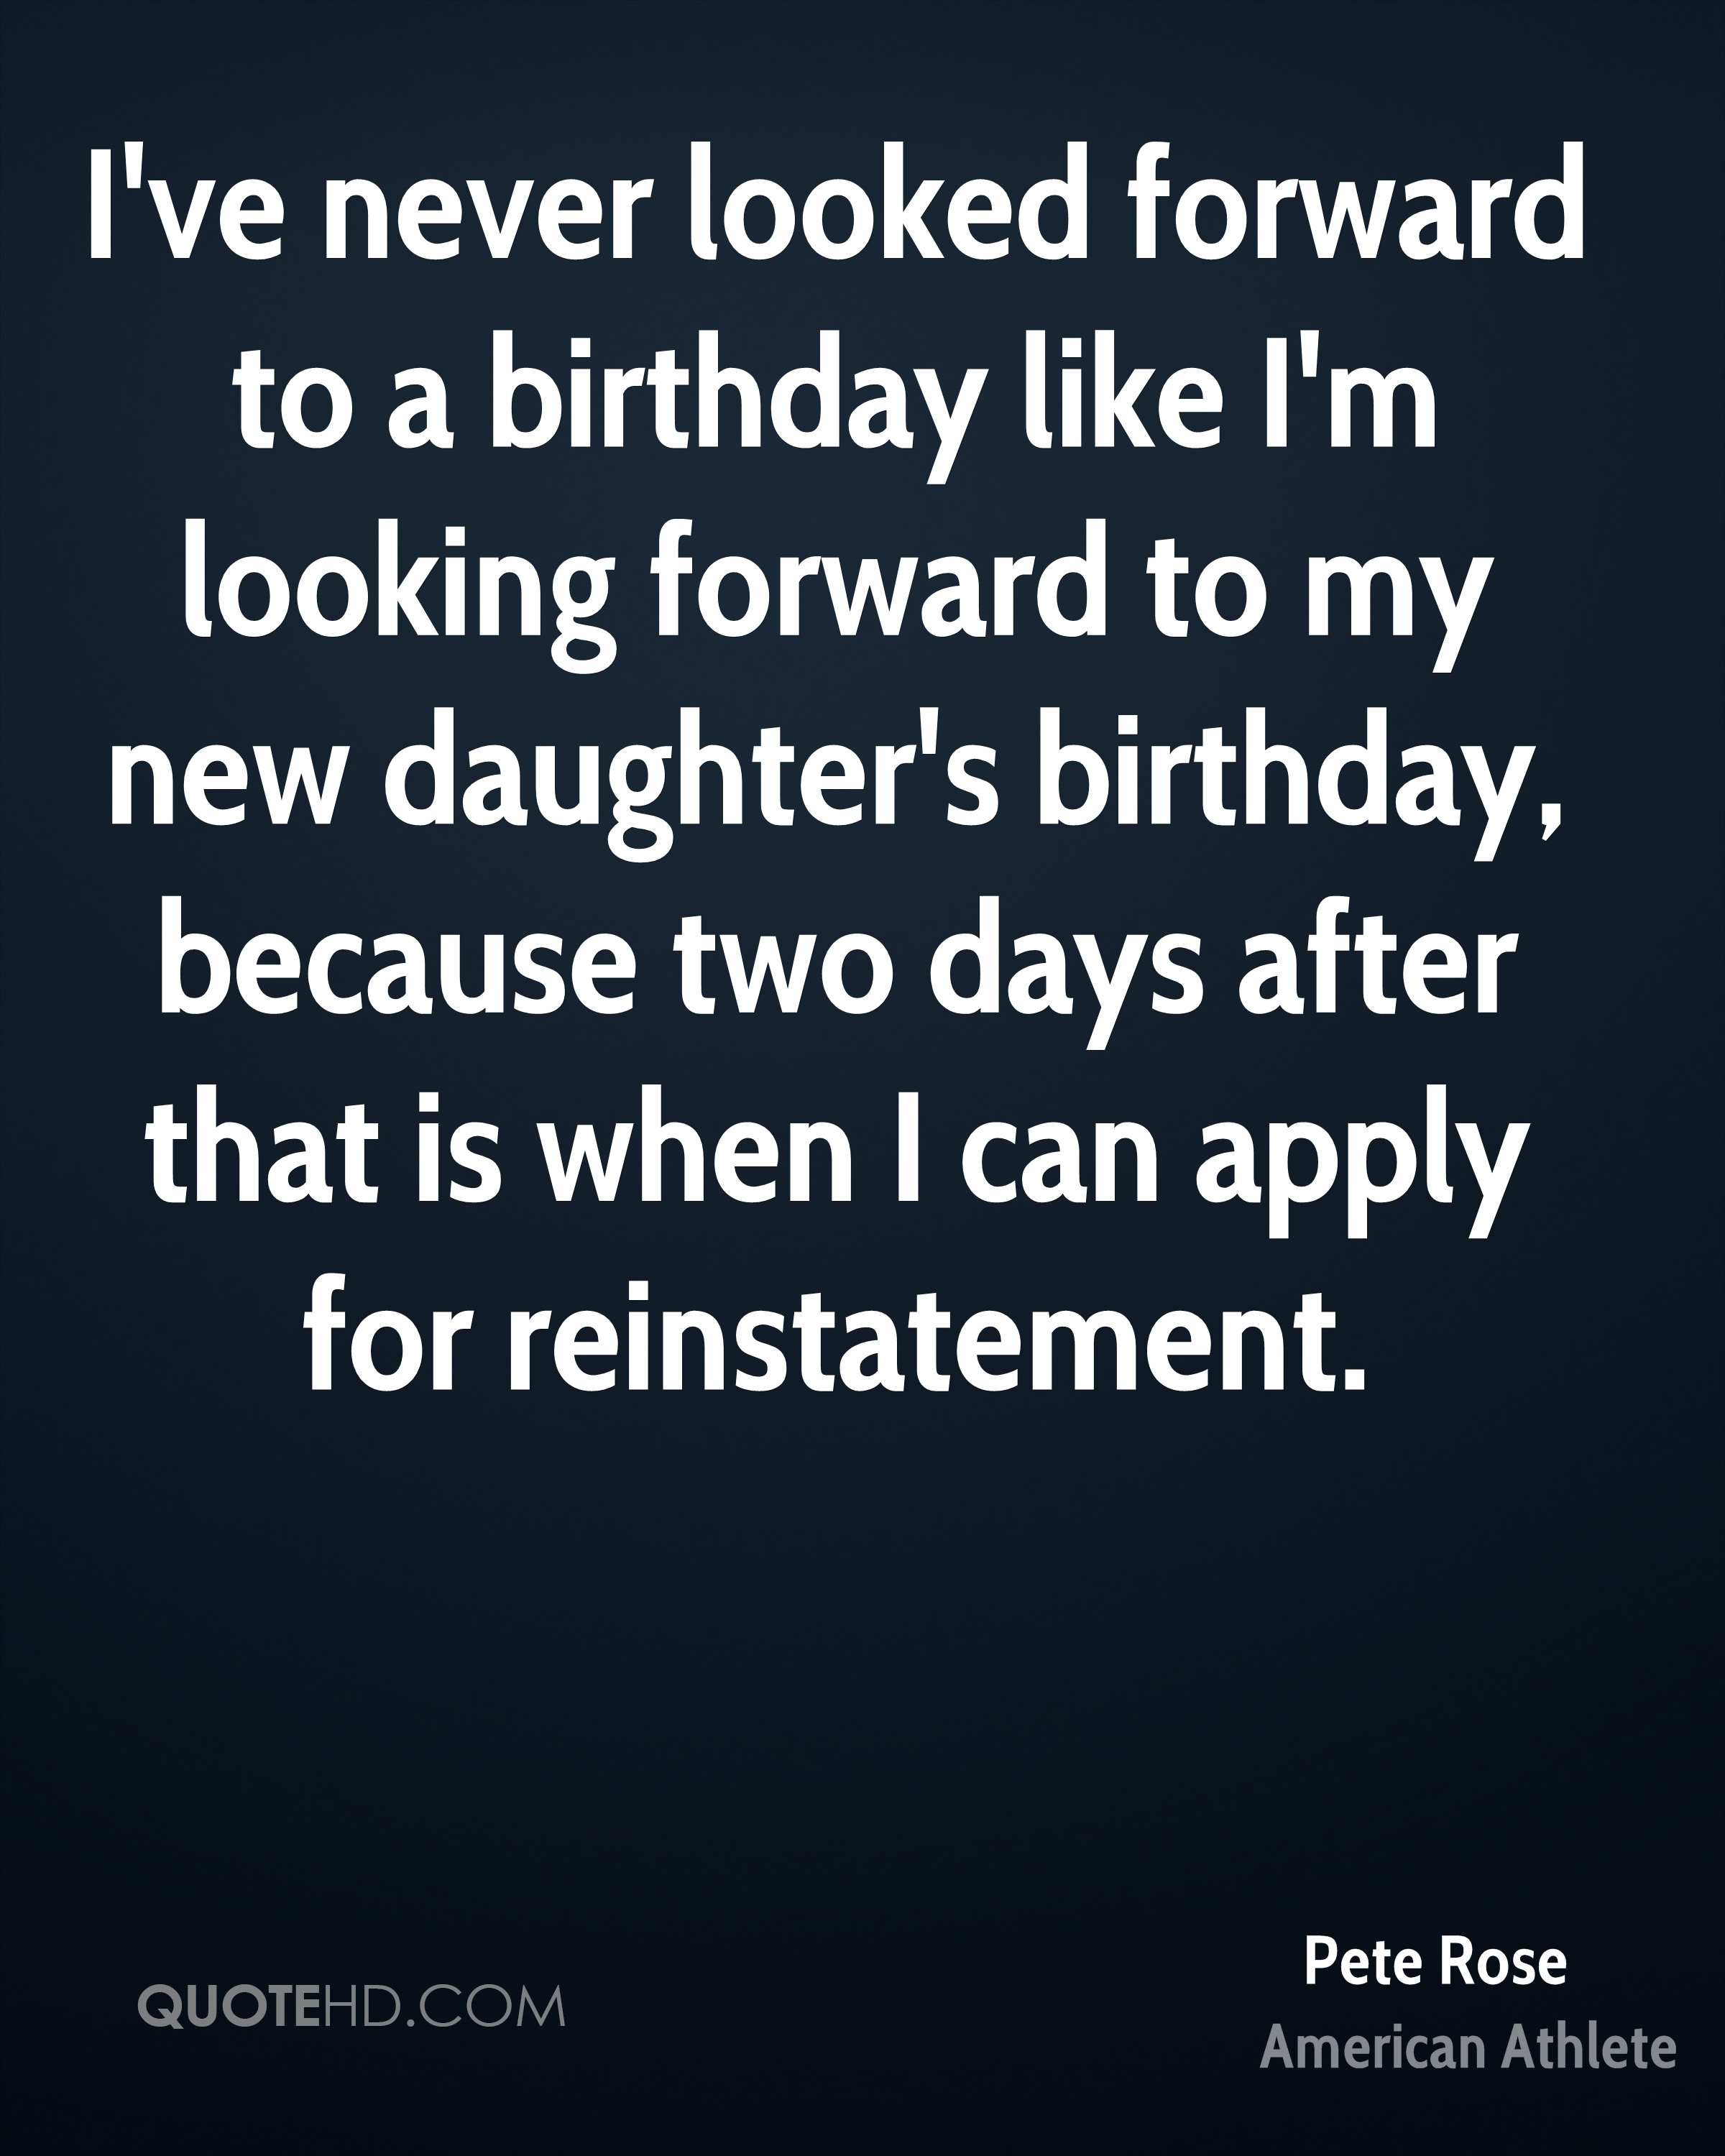 I've never looked forward to a birthday like I'm looking forward to my new daughter's birthday, because two days after that is when I can apply for reinstatement.